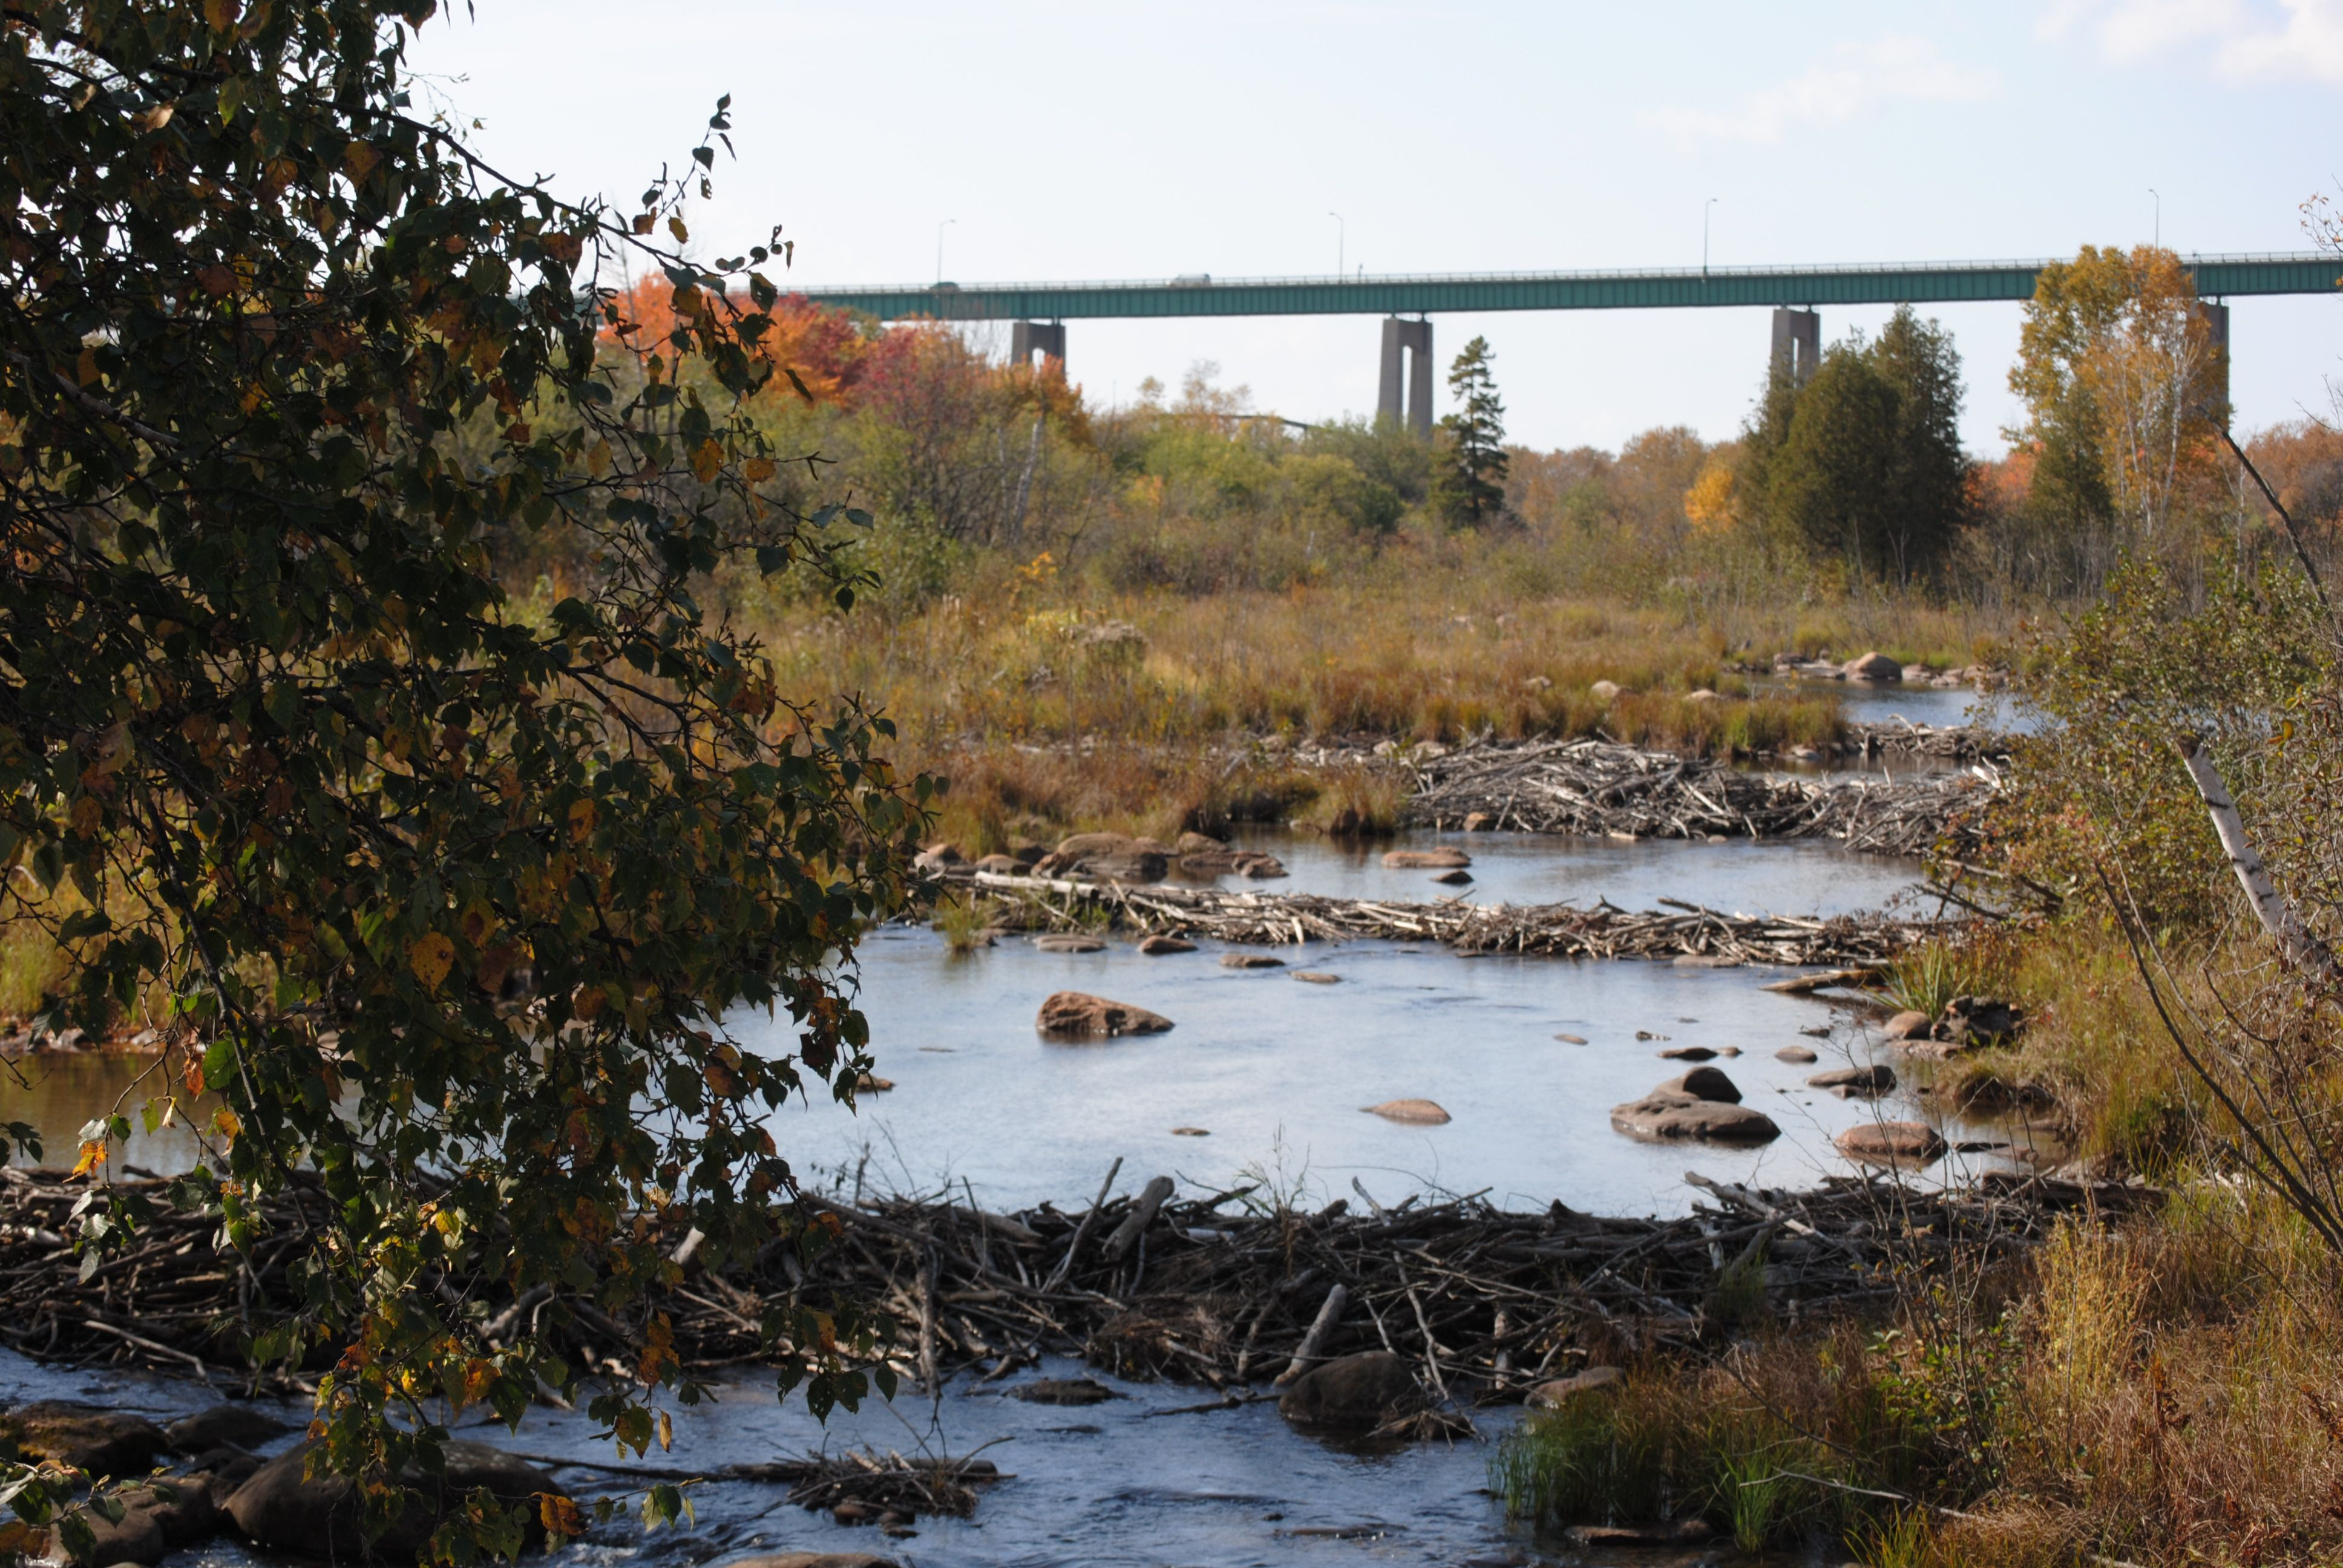 A Collection Of Beaver Dams Adjacent St Mary S Island In Sault Ste Marie Canada Beaver Dam Natural Landmarks